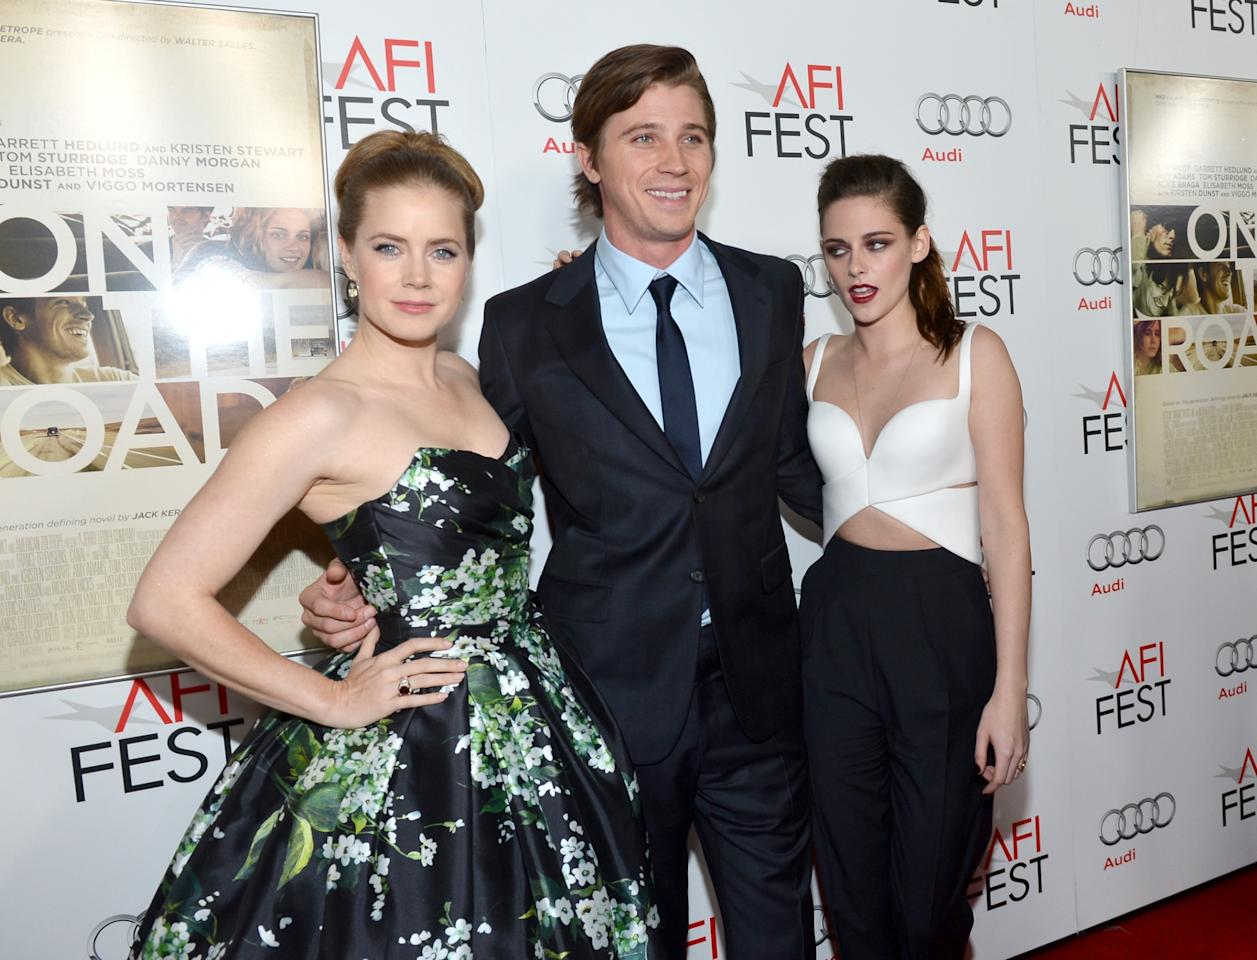 """HOLLYWOOD, CA - NOVEMBER 03:  (L-R) Actors Amy Adams, Garrett Hedlund, and Kristen Stewart arrives at the """"On The Road"""" premiere during the 2012 AFI Fest presented by Audi at Grauman's Chinese Theatre on November 3, 2012 in Hollywood, California.  (Photo by Alberto E. Rodriguez/Getty Images for AFI)"""